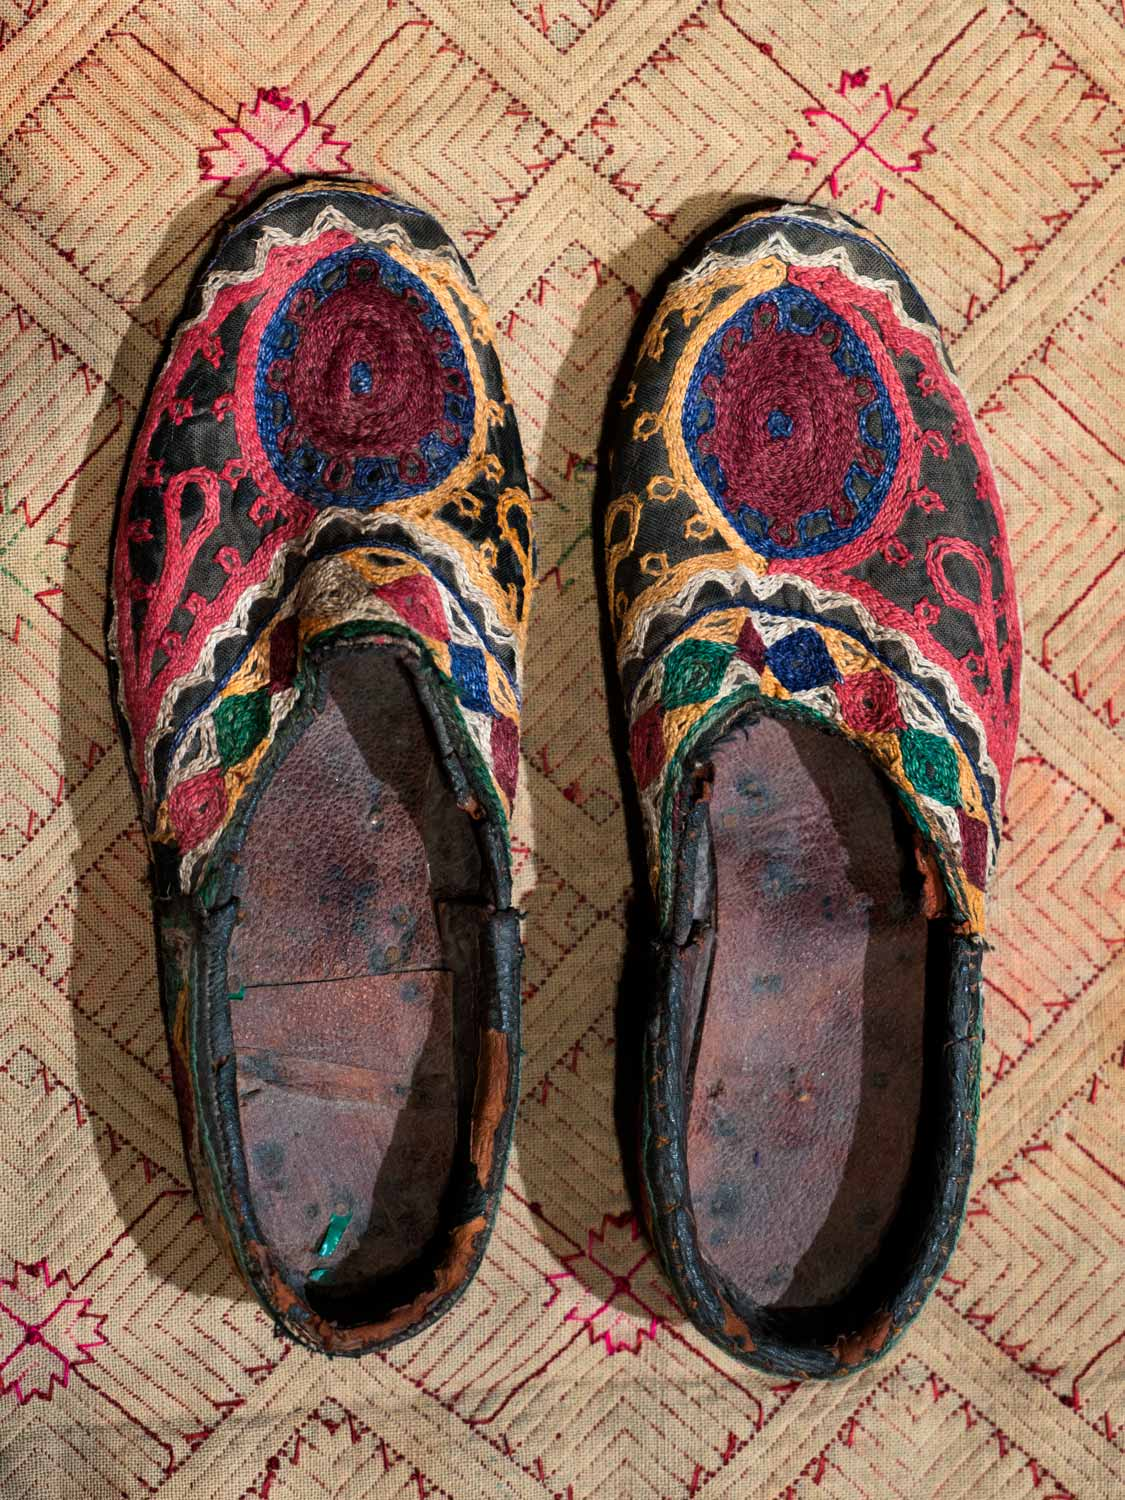 Vintage Embroidered Shoes from Afghanistan, Maroon Sun